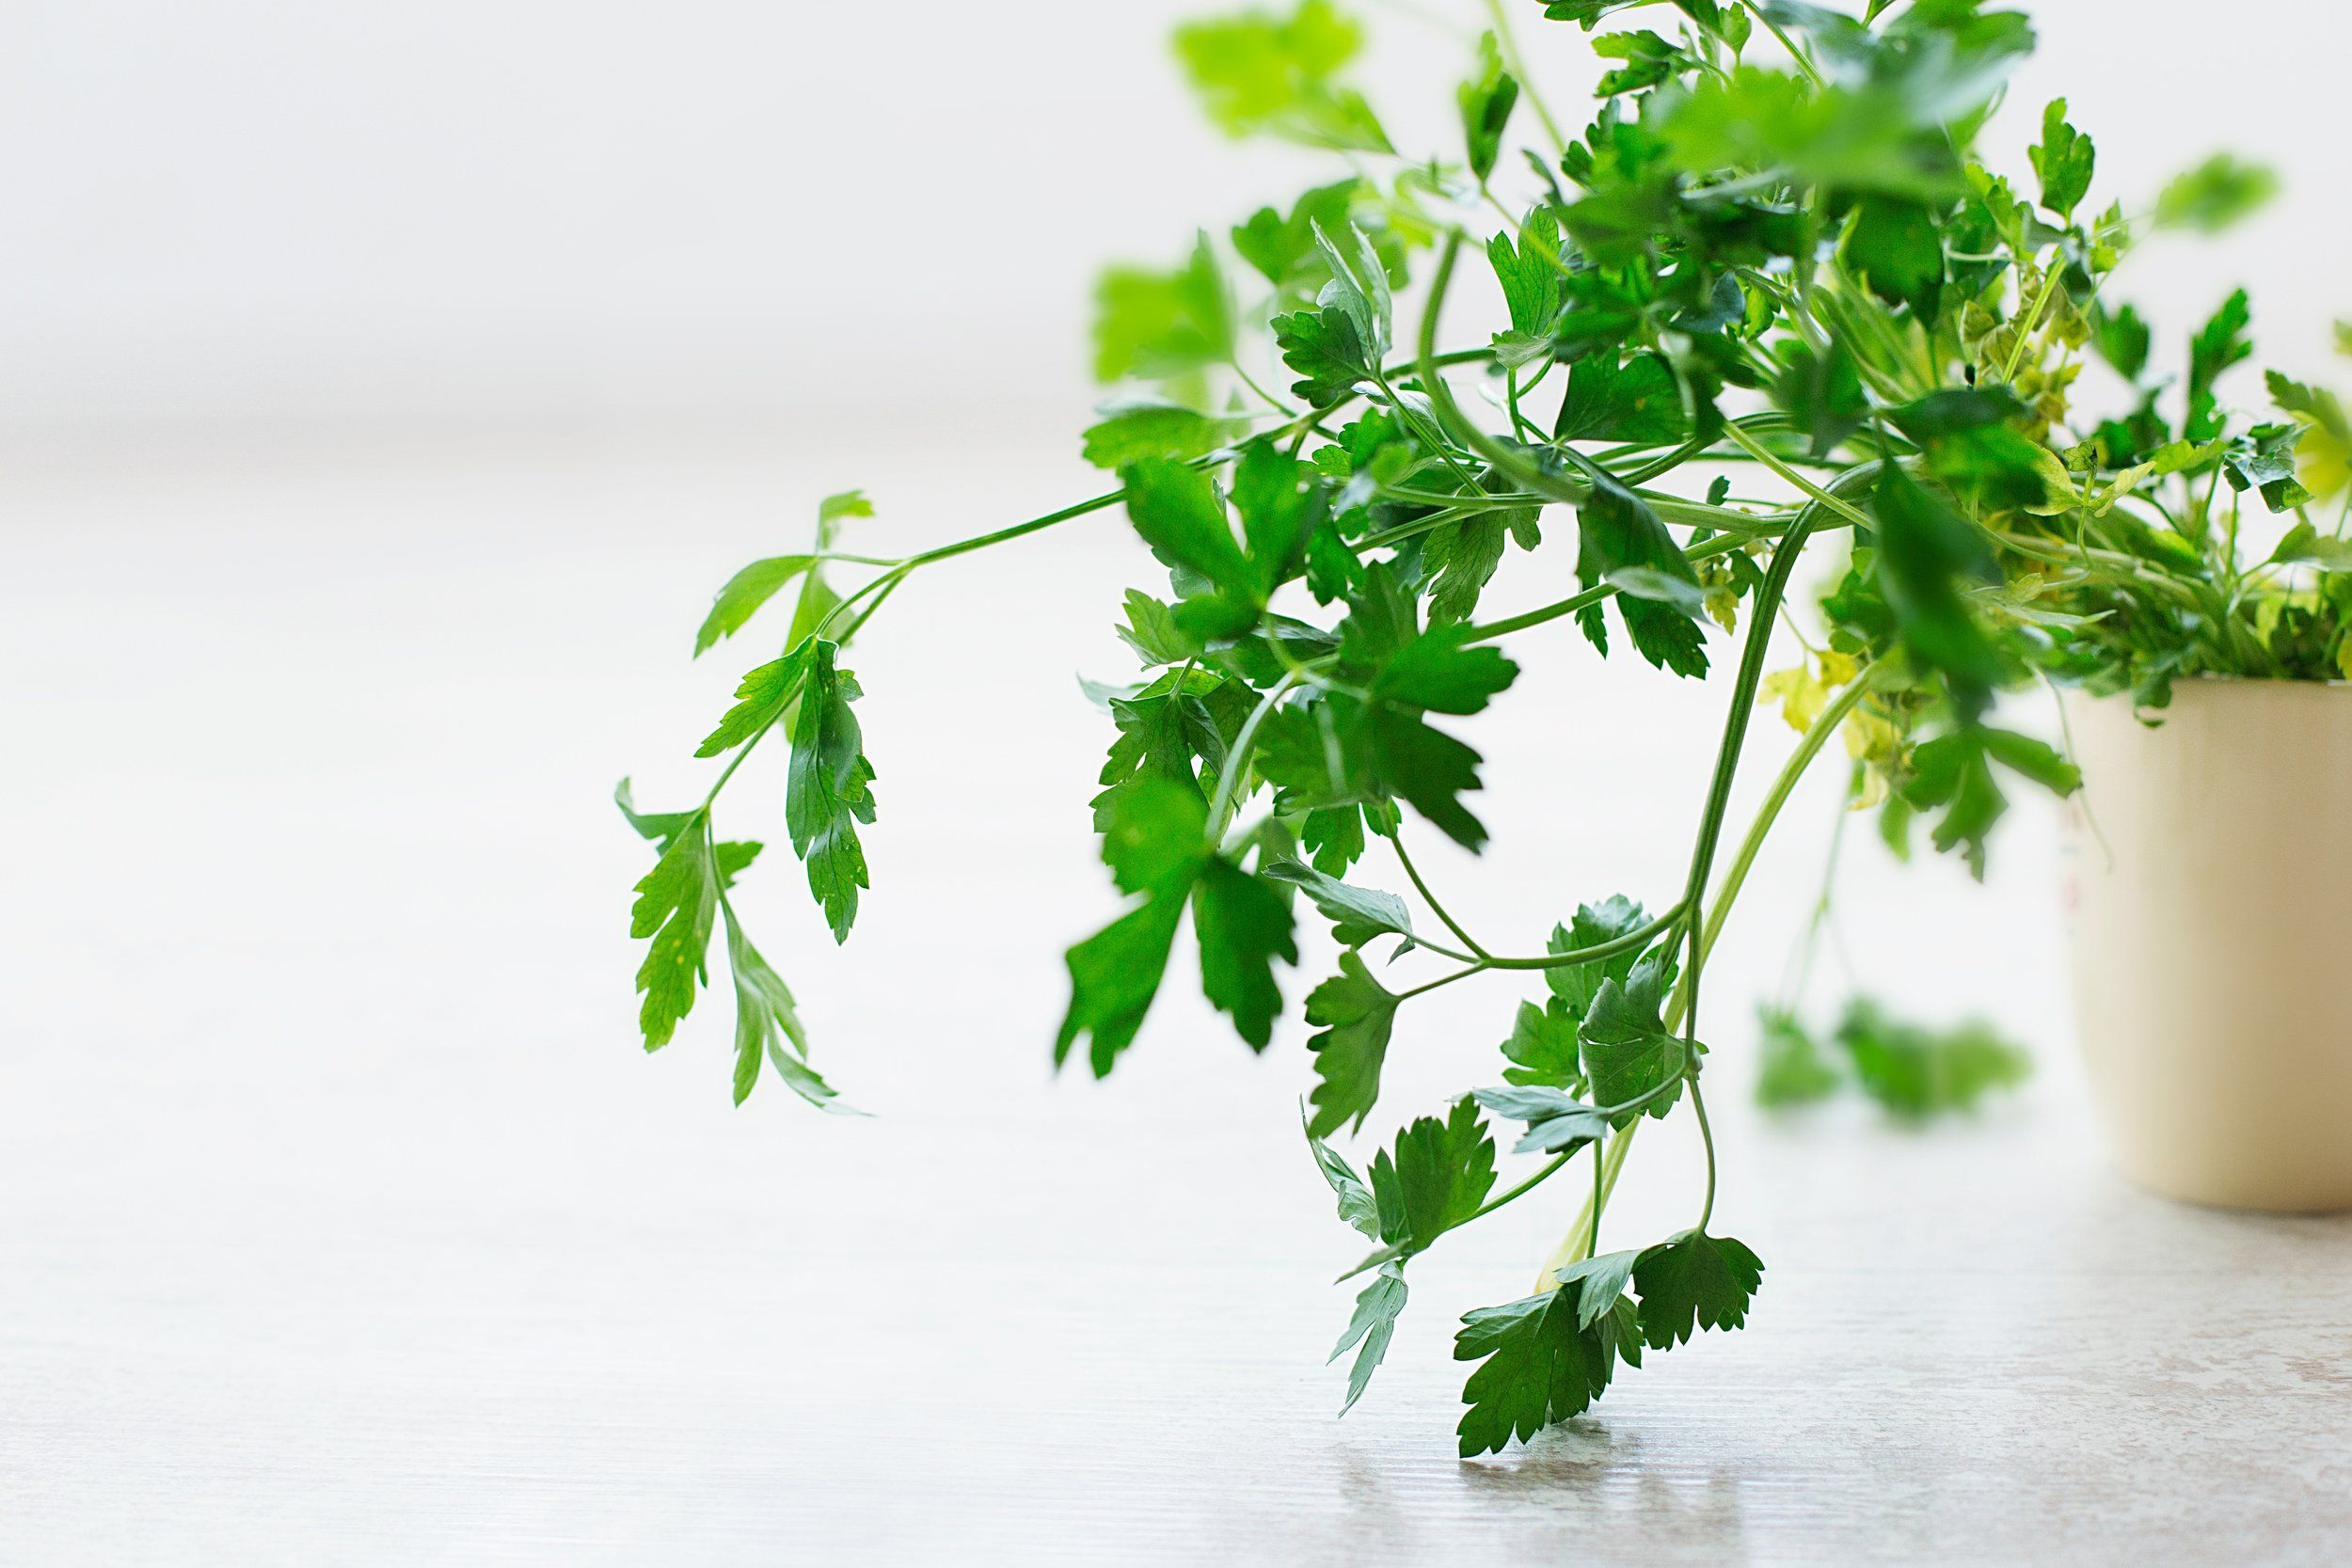 Health Benefits Of Herb & Spices My Top Picks That I Use